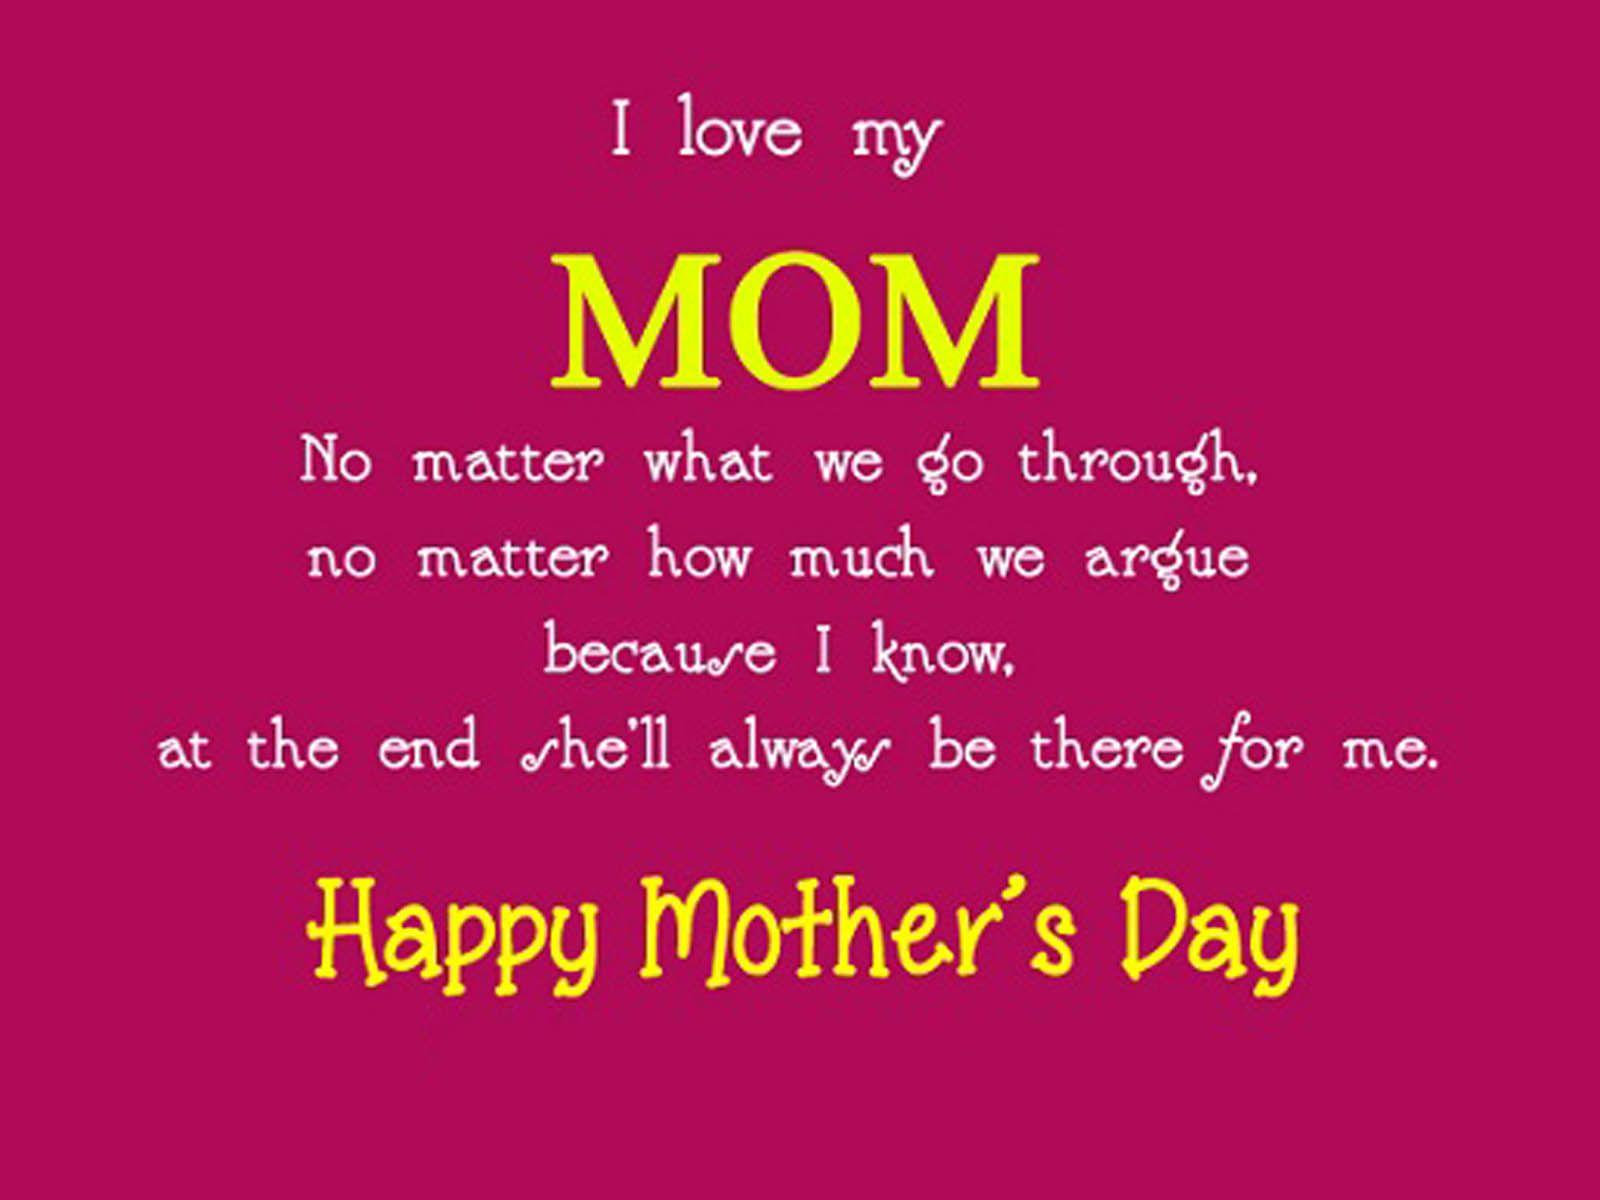 mother's day sayings | Happy Mother's Day Quotes | Mom's | Pinterest